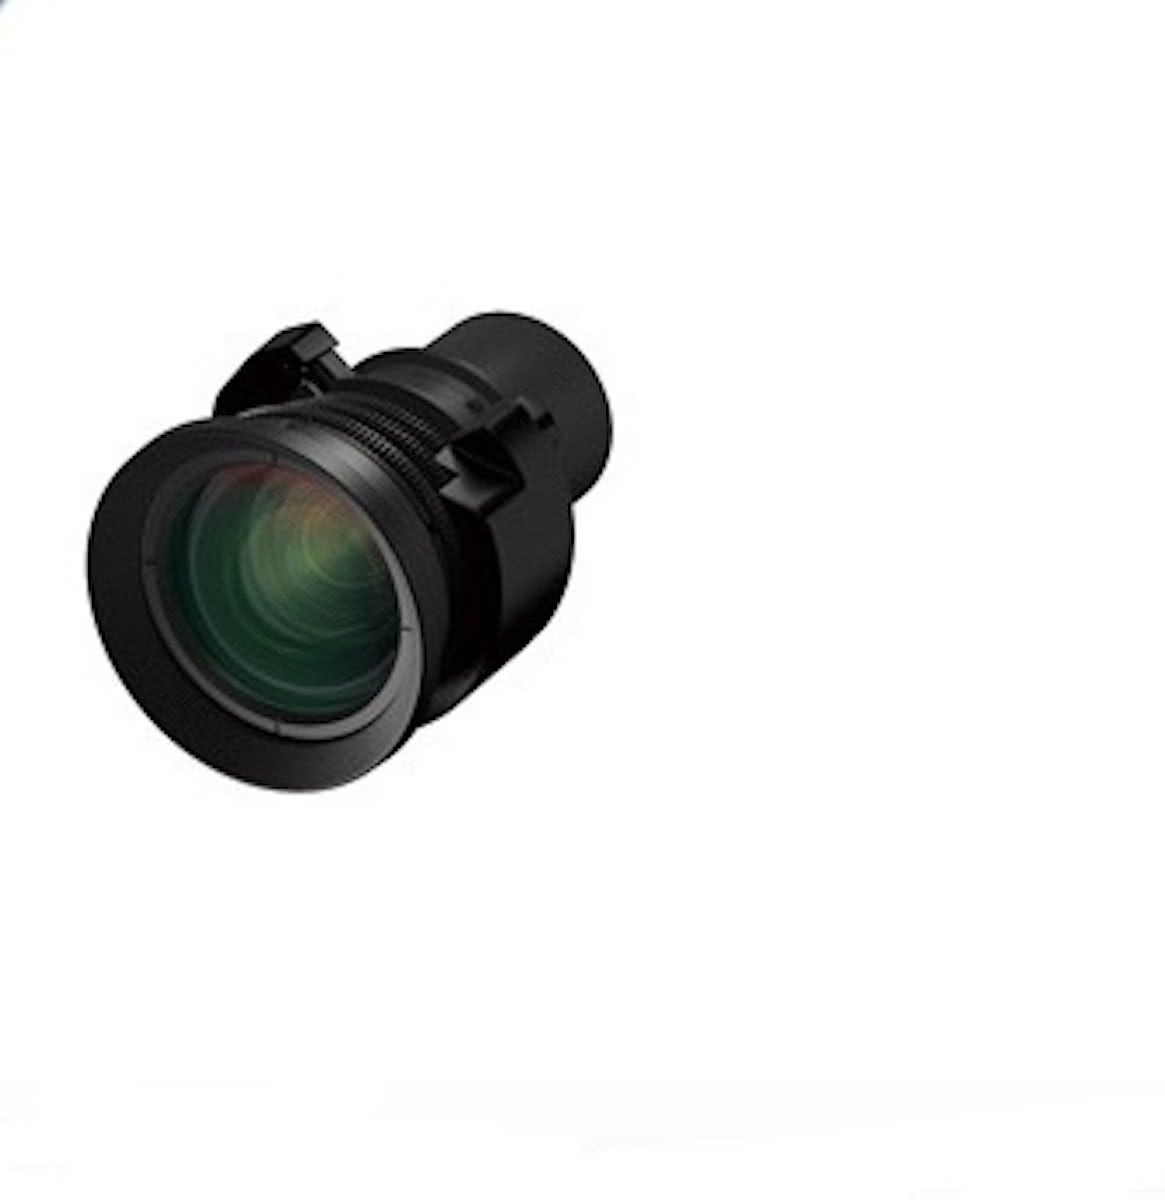 Lens - ELPLW05 - G7000 & L1000 Series wide zoom 1